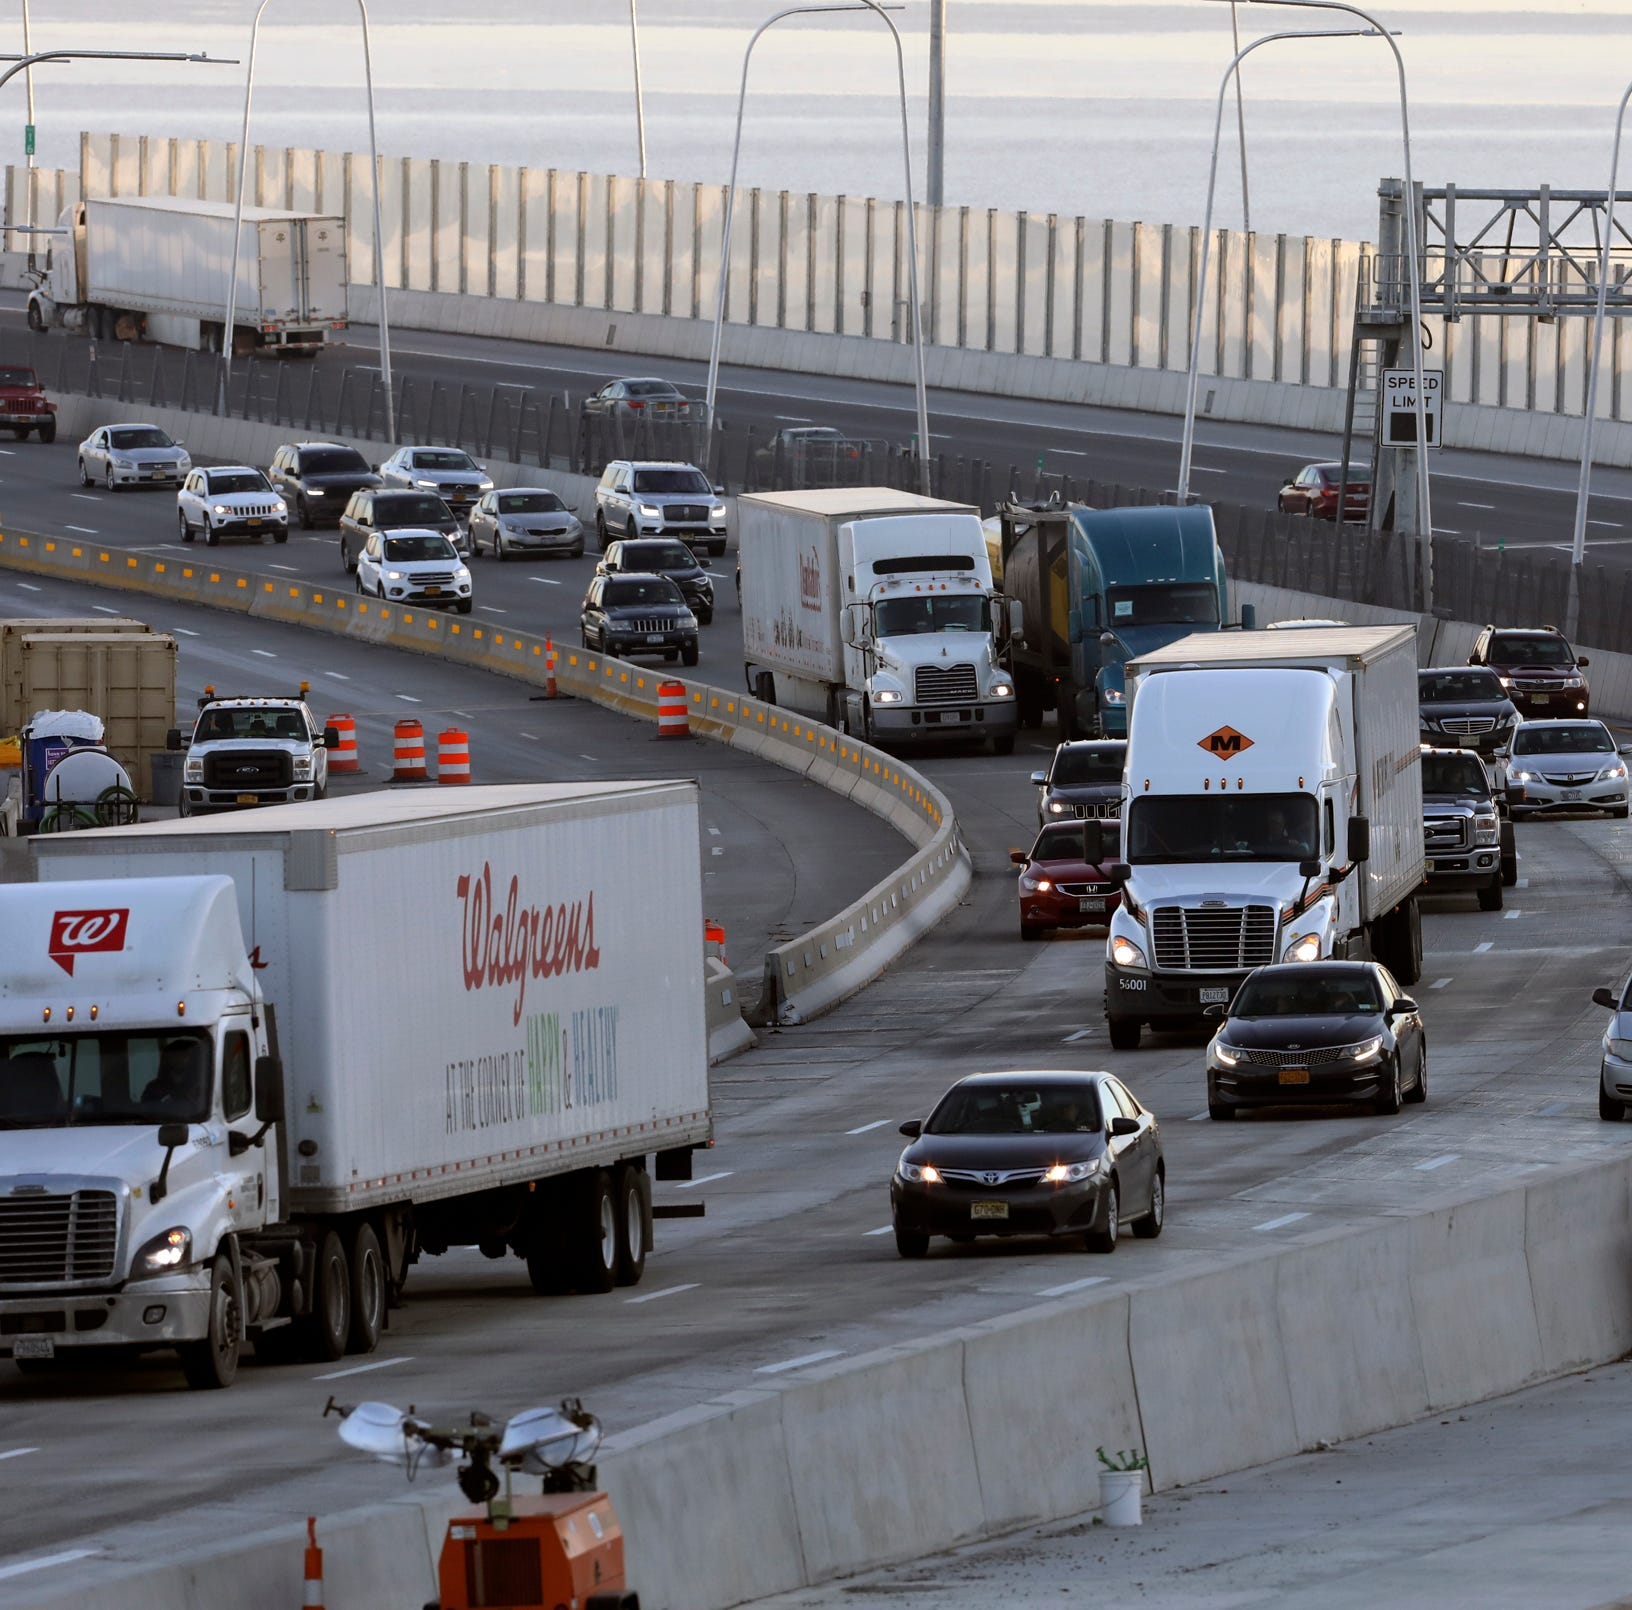 Truck traffic surges on Gov. Mario M. Cuomo Bridge, drops at George Washington Bridge